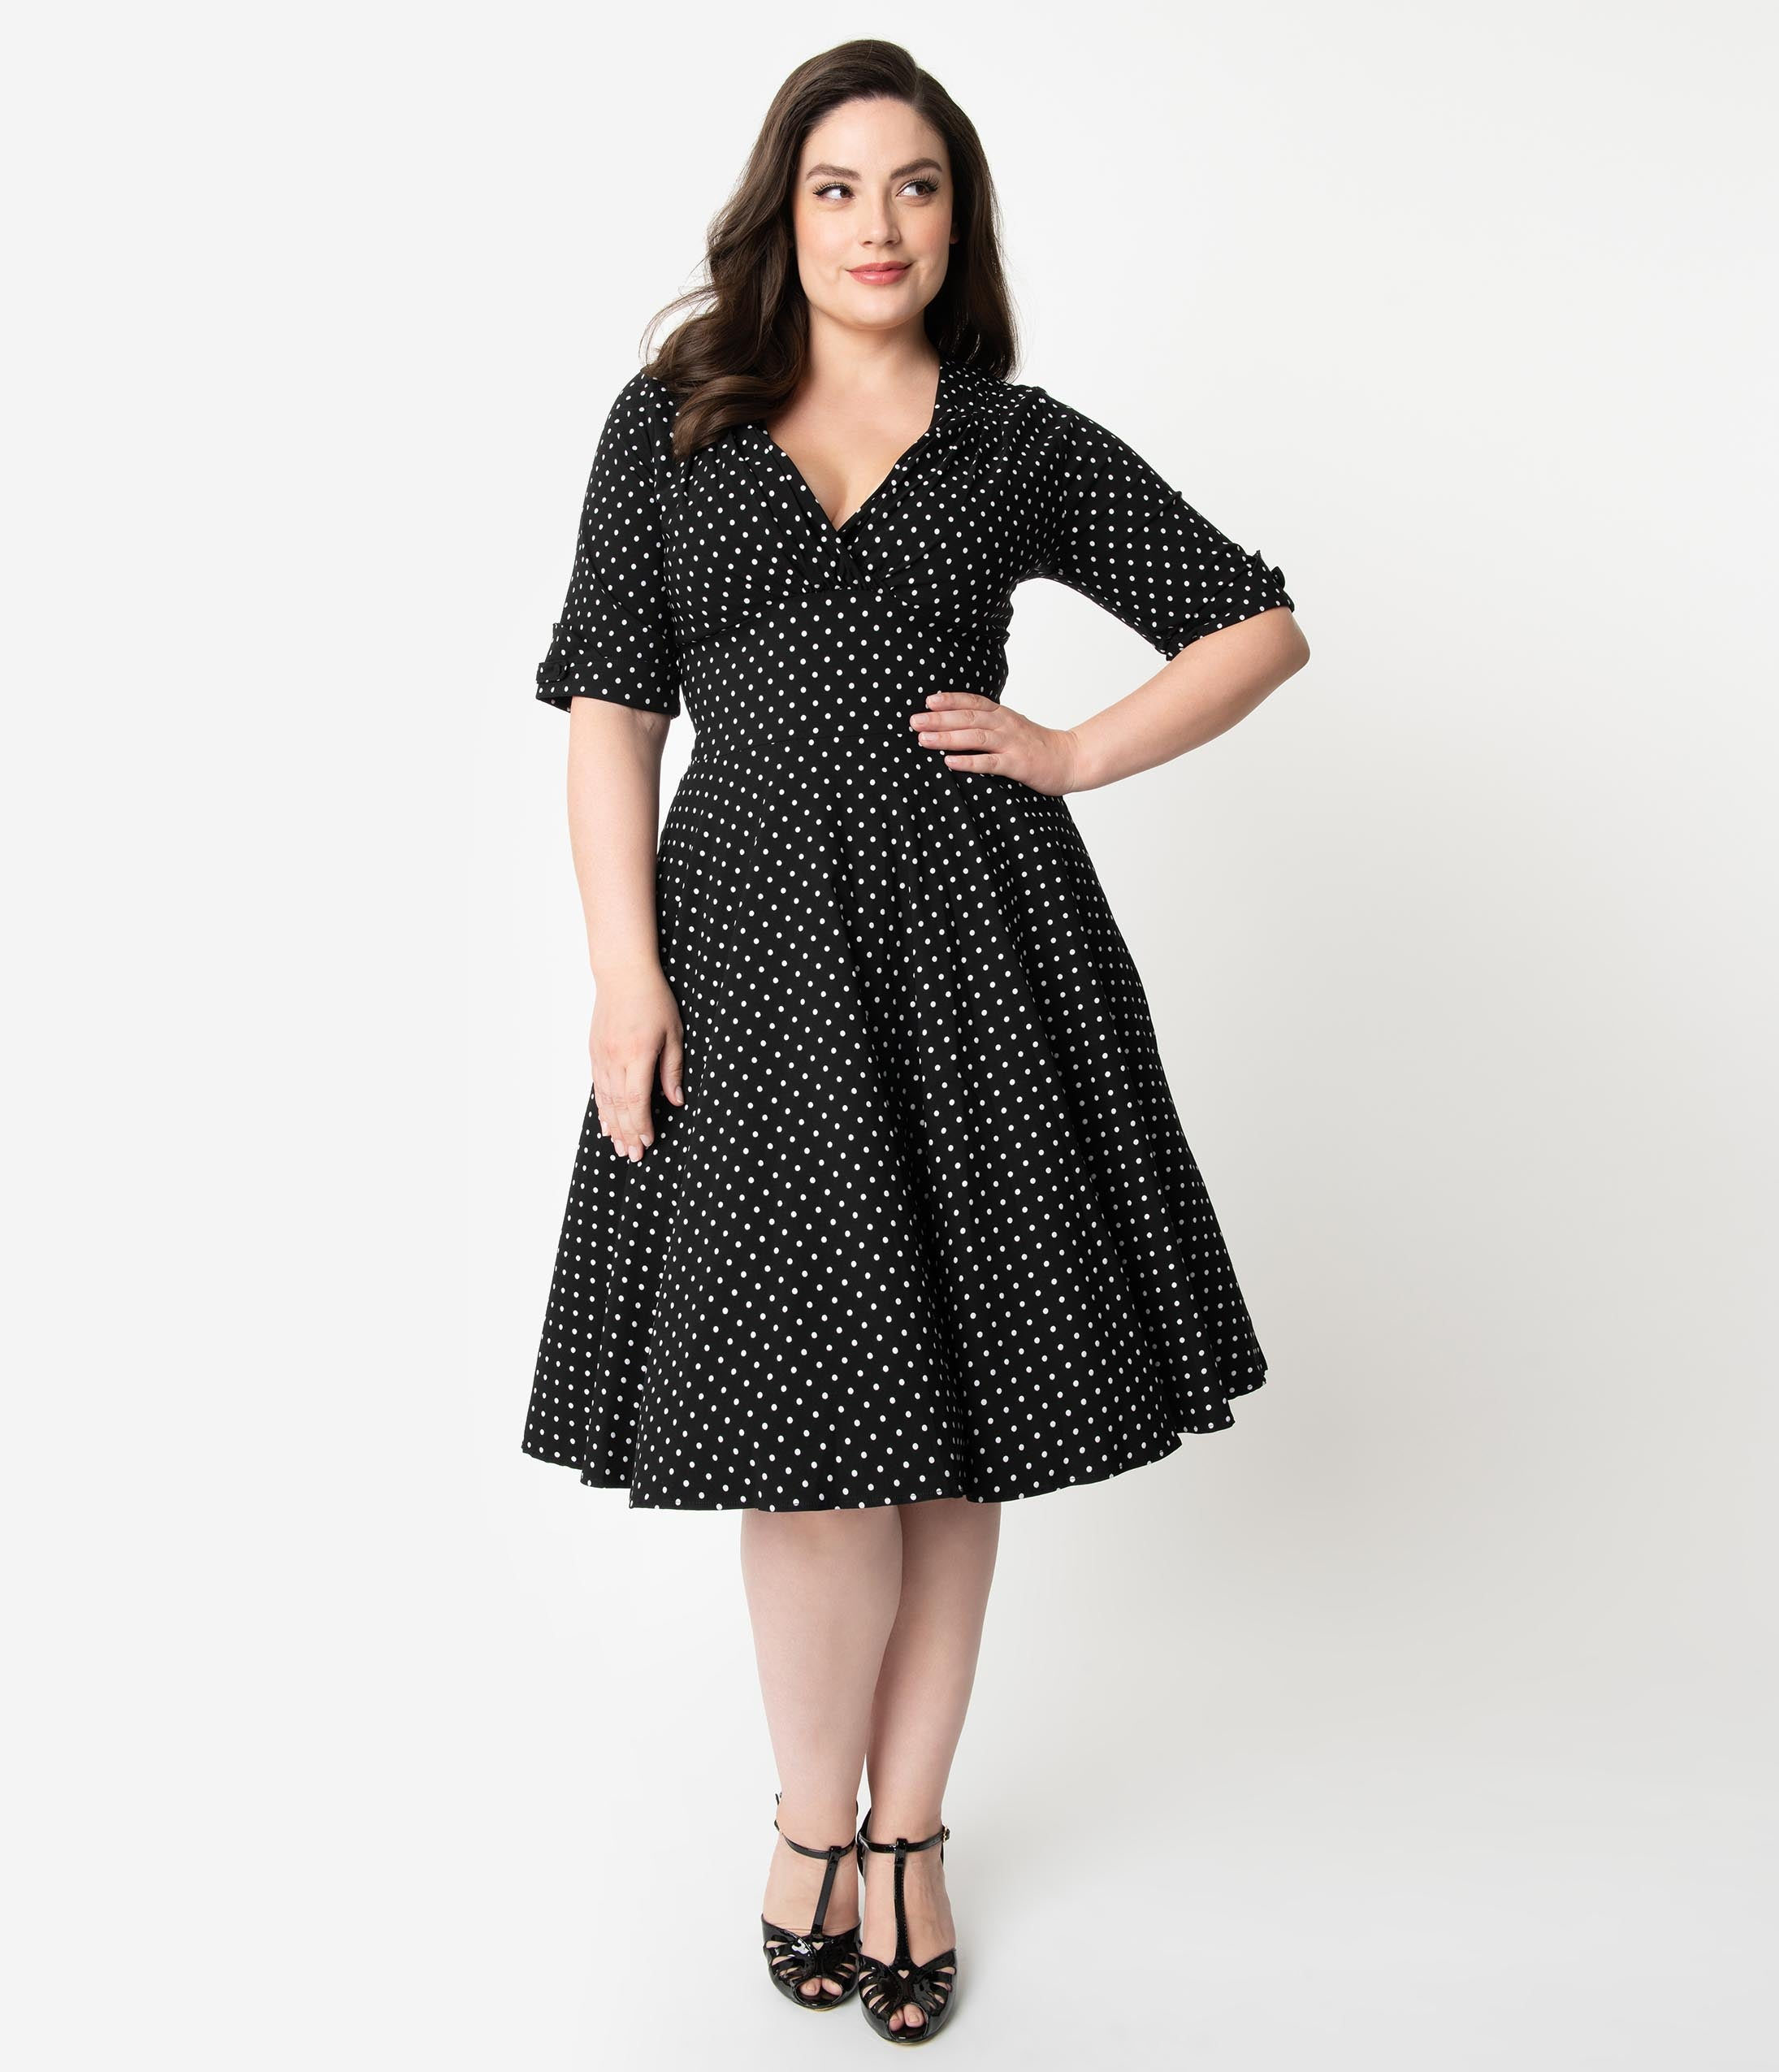 1950s Dresses, 50s Dresses | 1950s Style Dresses Unique Vintage Plus Size 1950S Black  White Dot Delores Swing Dress With Sleeves $92.00 AT vintagedancer.com